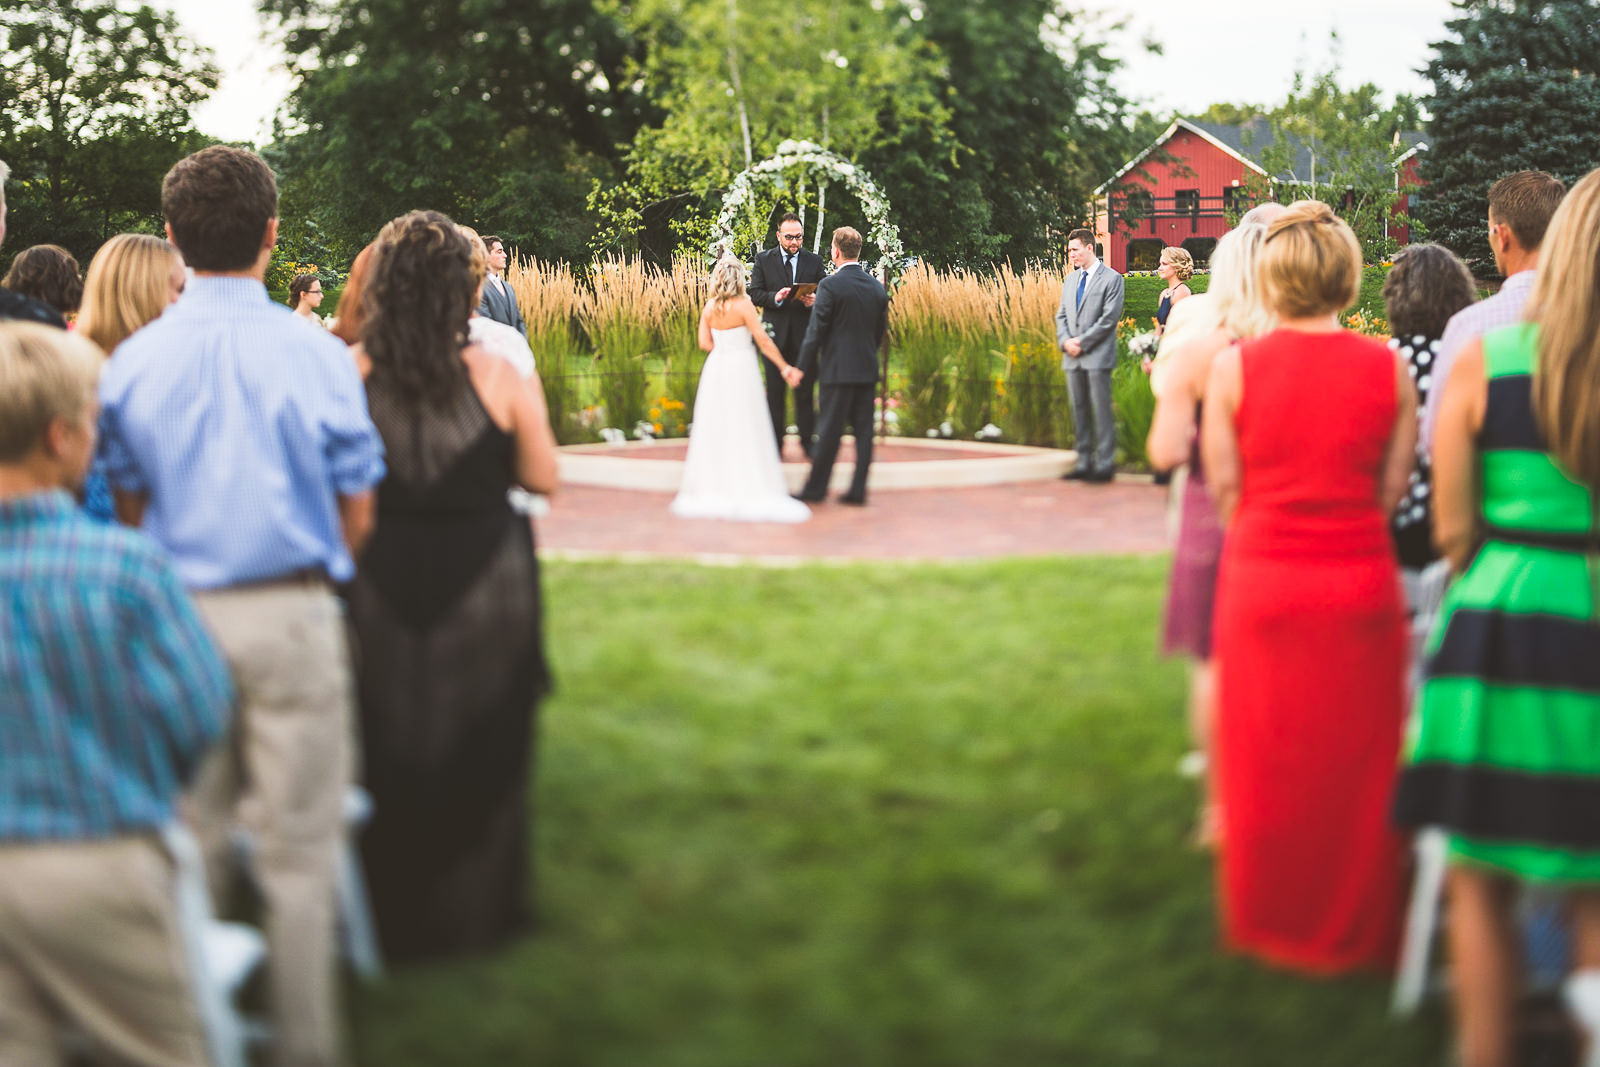 24 tilt shift at wedding photography - Karen + Scott // Fishermens Inn Wedding Photographer Elburn Illinois